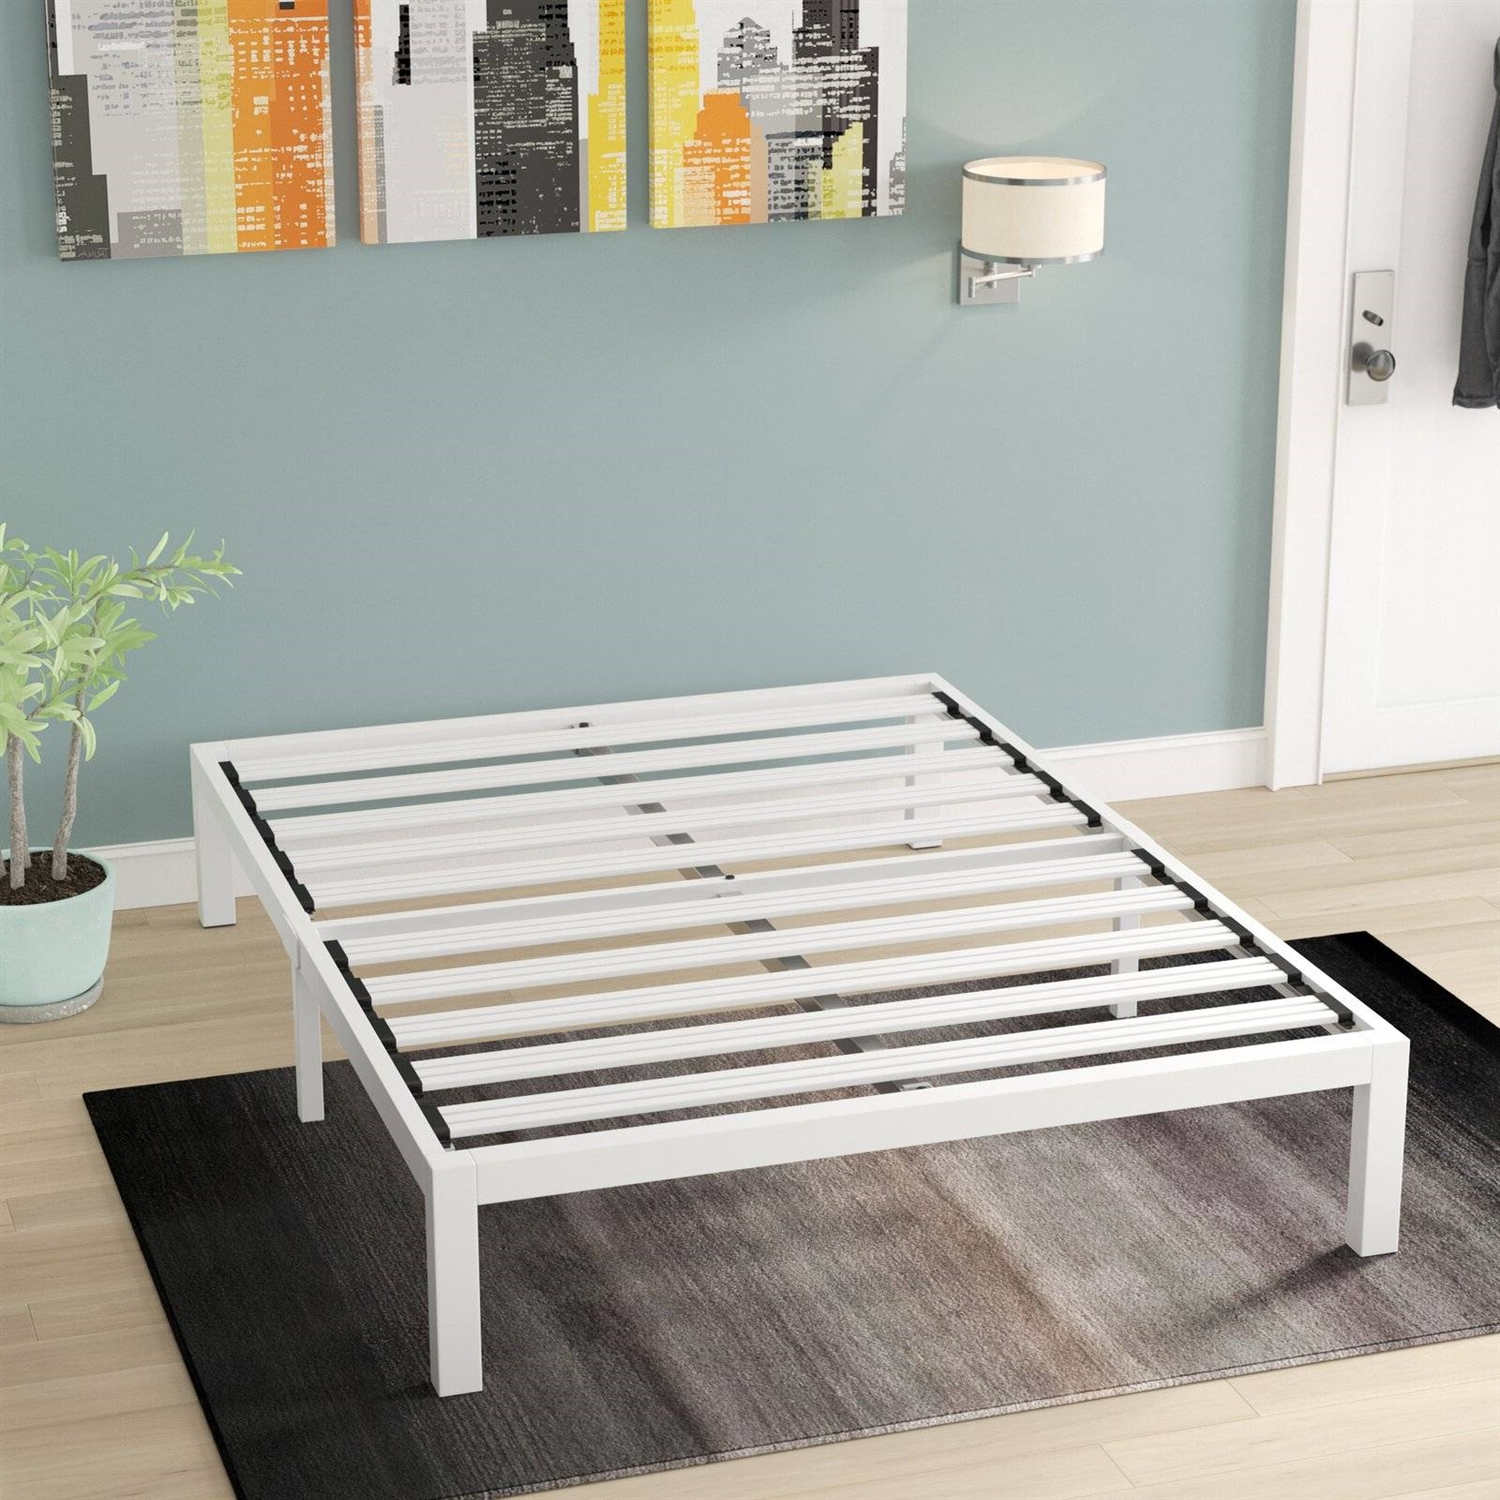 Picture of: Queen Size Heavy Duty Metal Platform Bed Frame In White Fastfurnishings Com